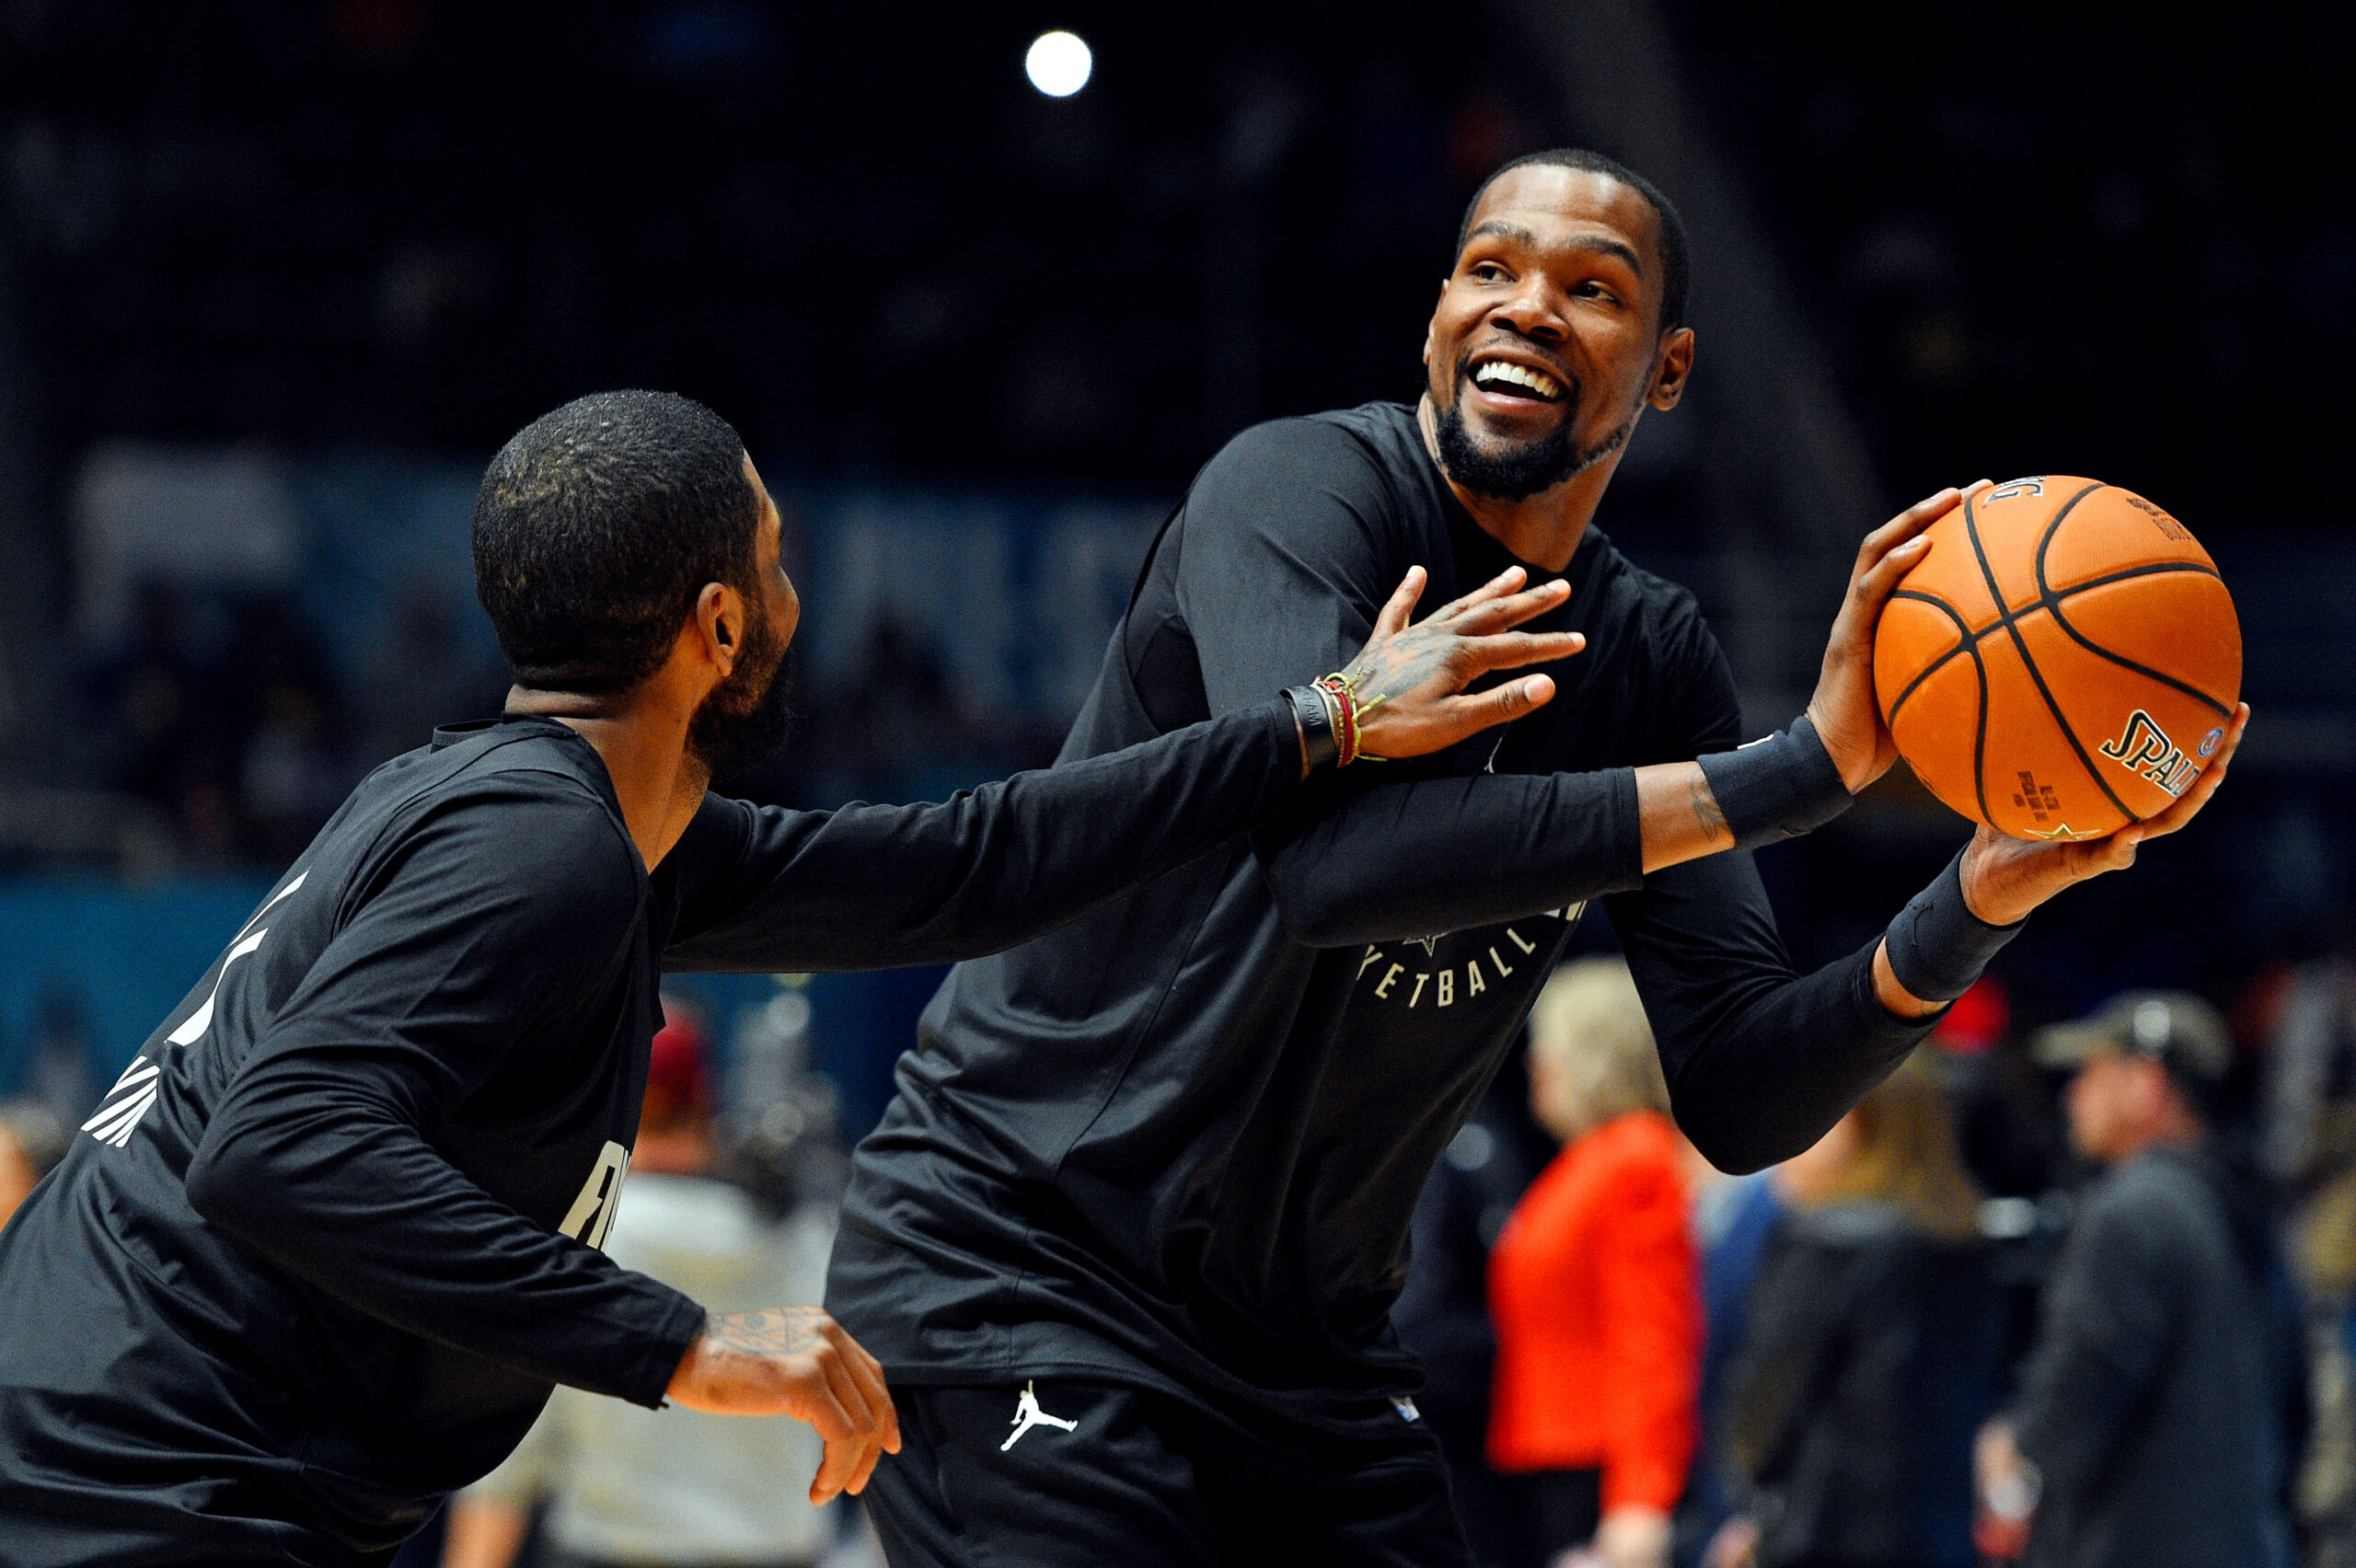 Media Week roundup: Kevin Durant says he's feeling 'good'